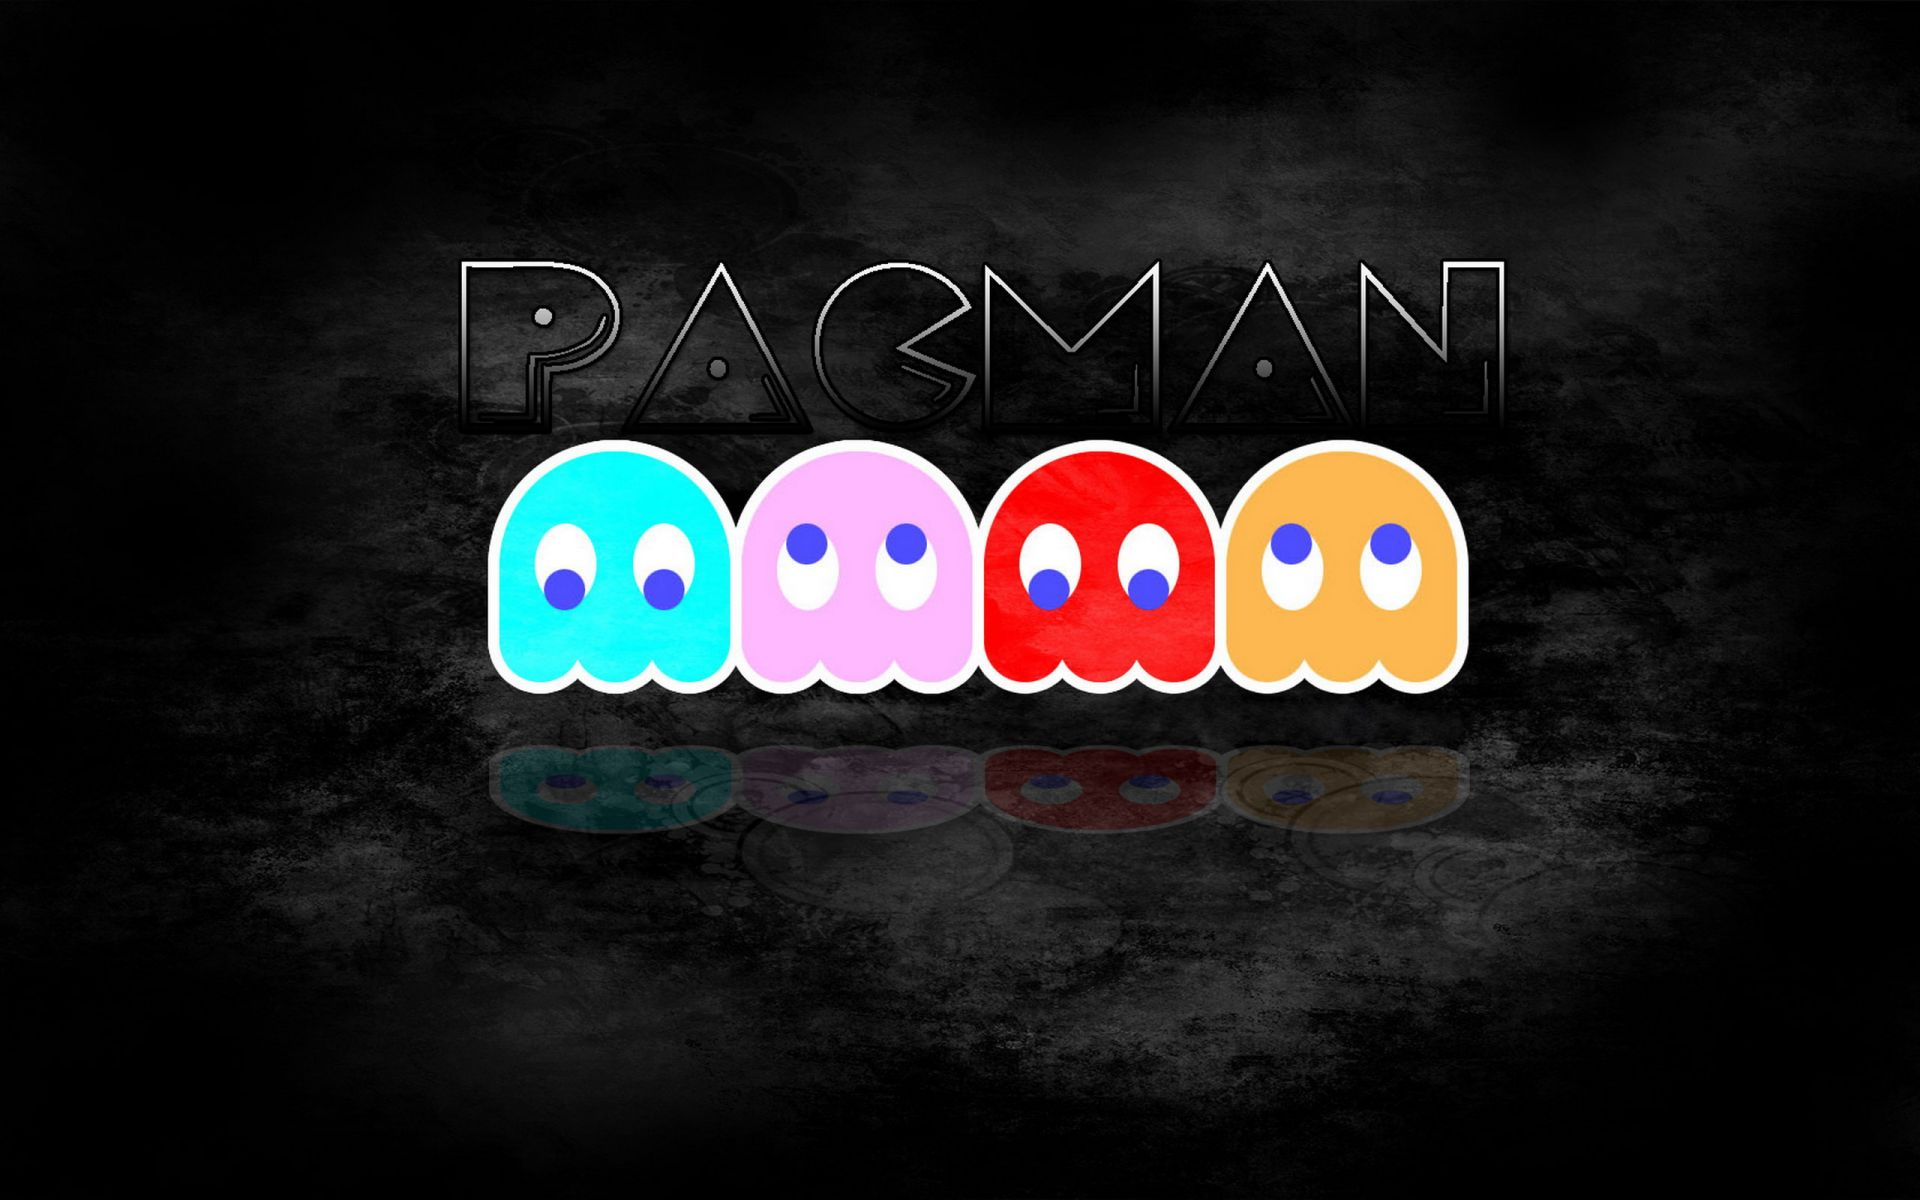 Pacman Wallpaper 9 HD